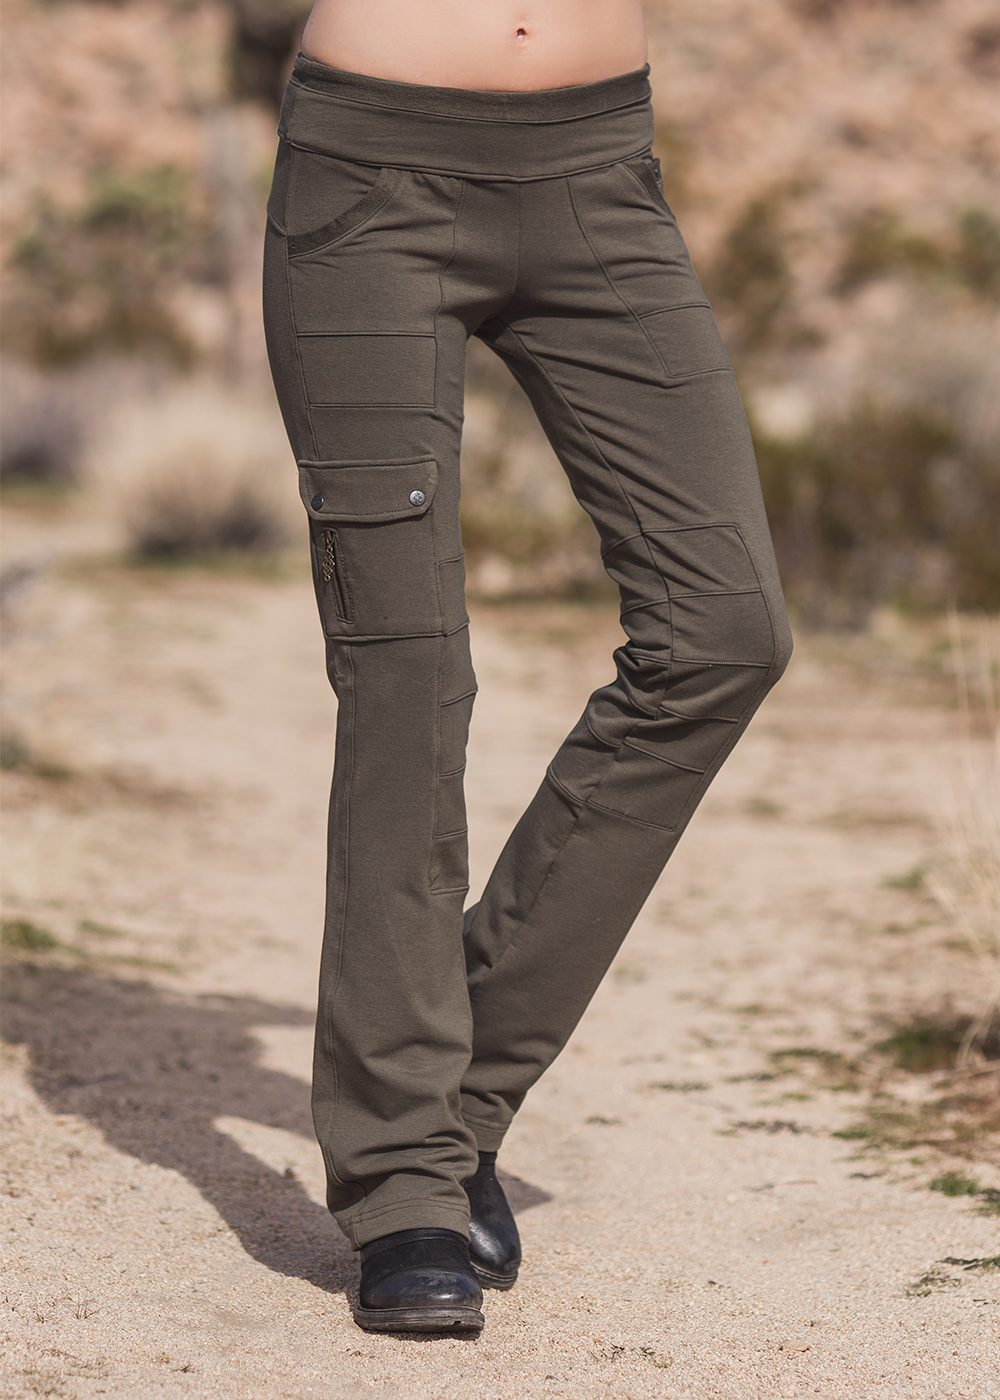 Wander Pants in Organic Cotton & Bamboo Terry - Nomads Hemp Wear